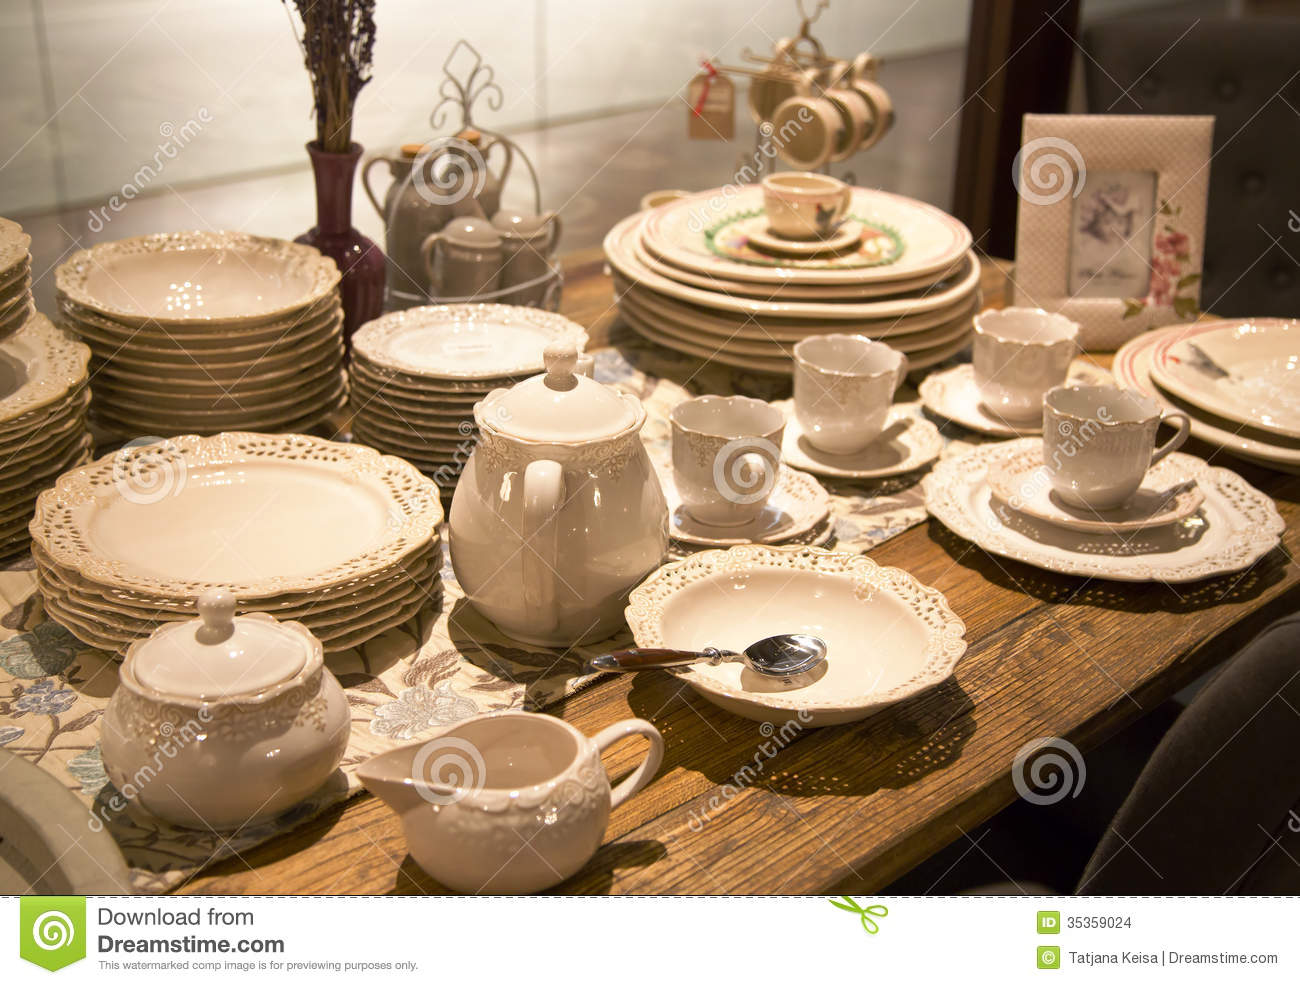 Delicate porcelain tableware & Delicate Porcelain Tableware Stock Photo - Image of china dining ...